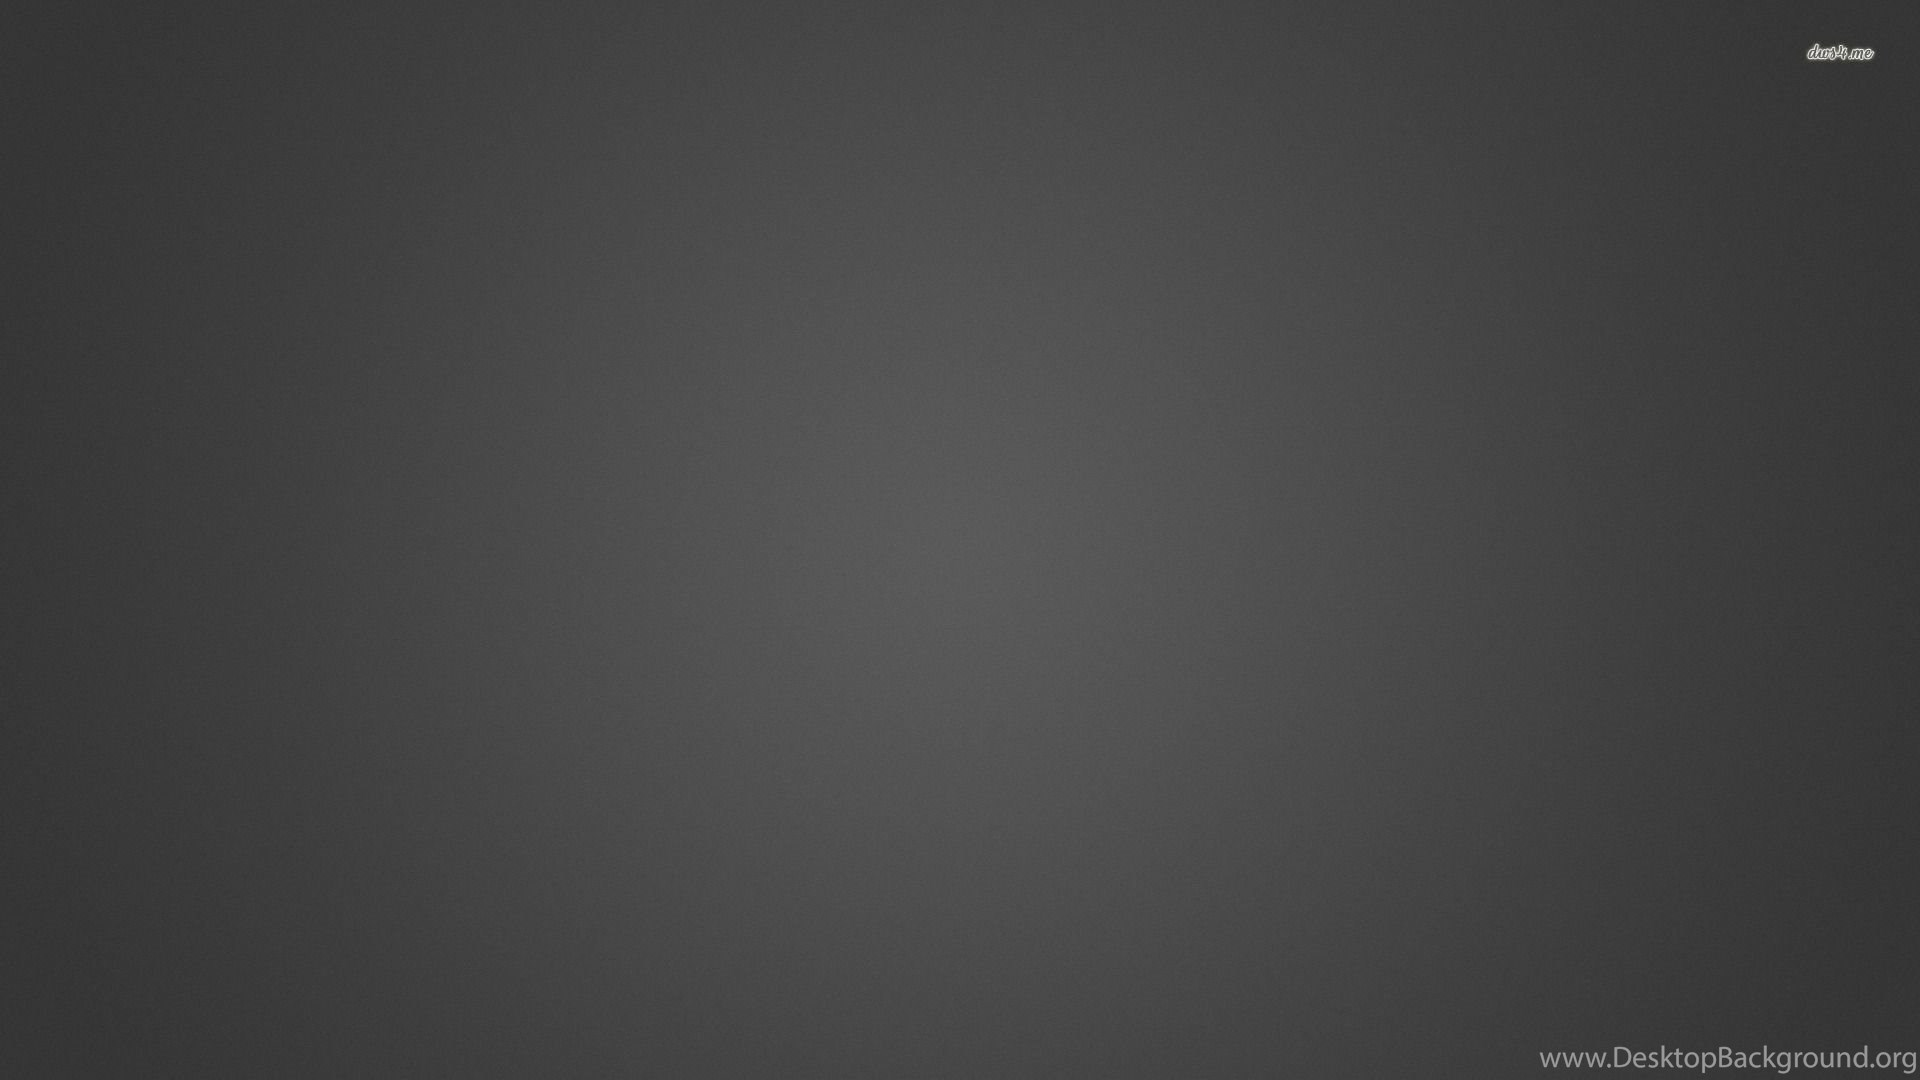 Grey Gradient Abstract 1920x1080 Hd Wallpapers And Free Stock Photo Desktop Background